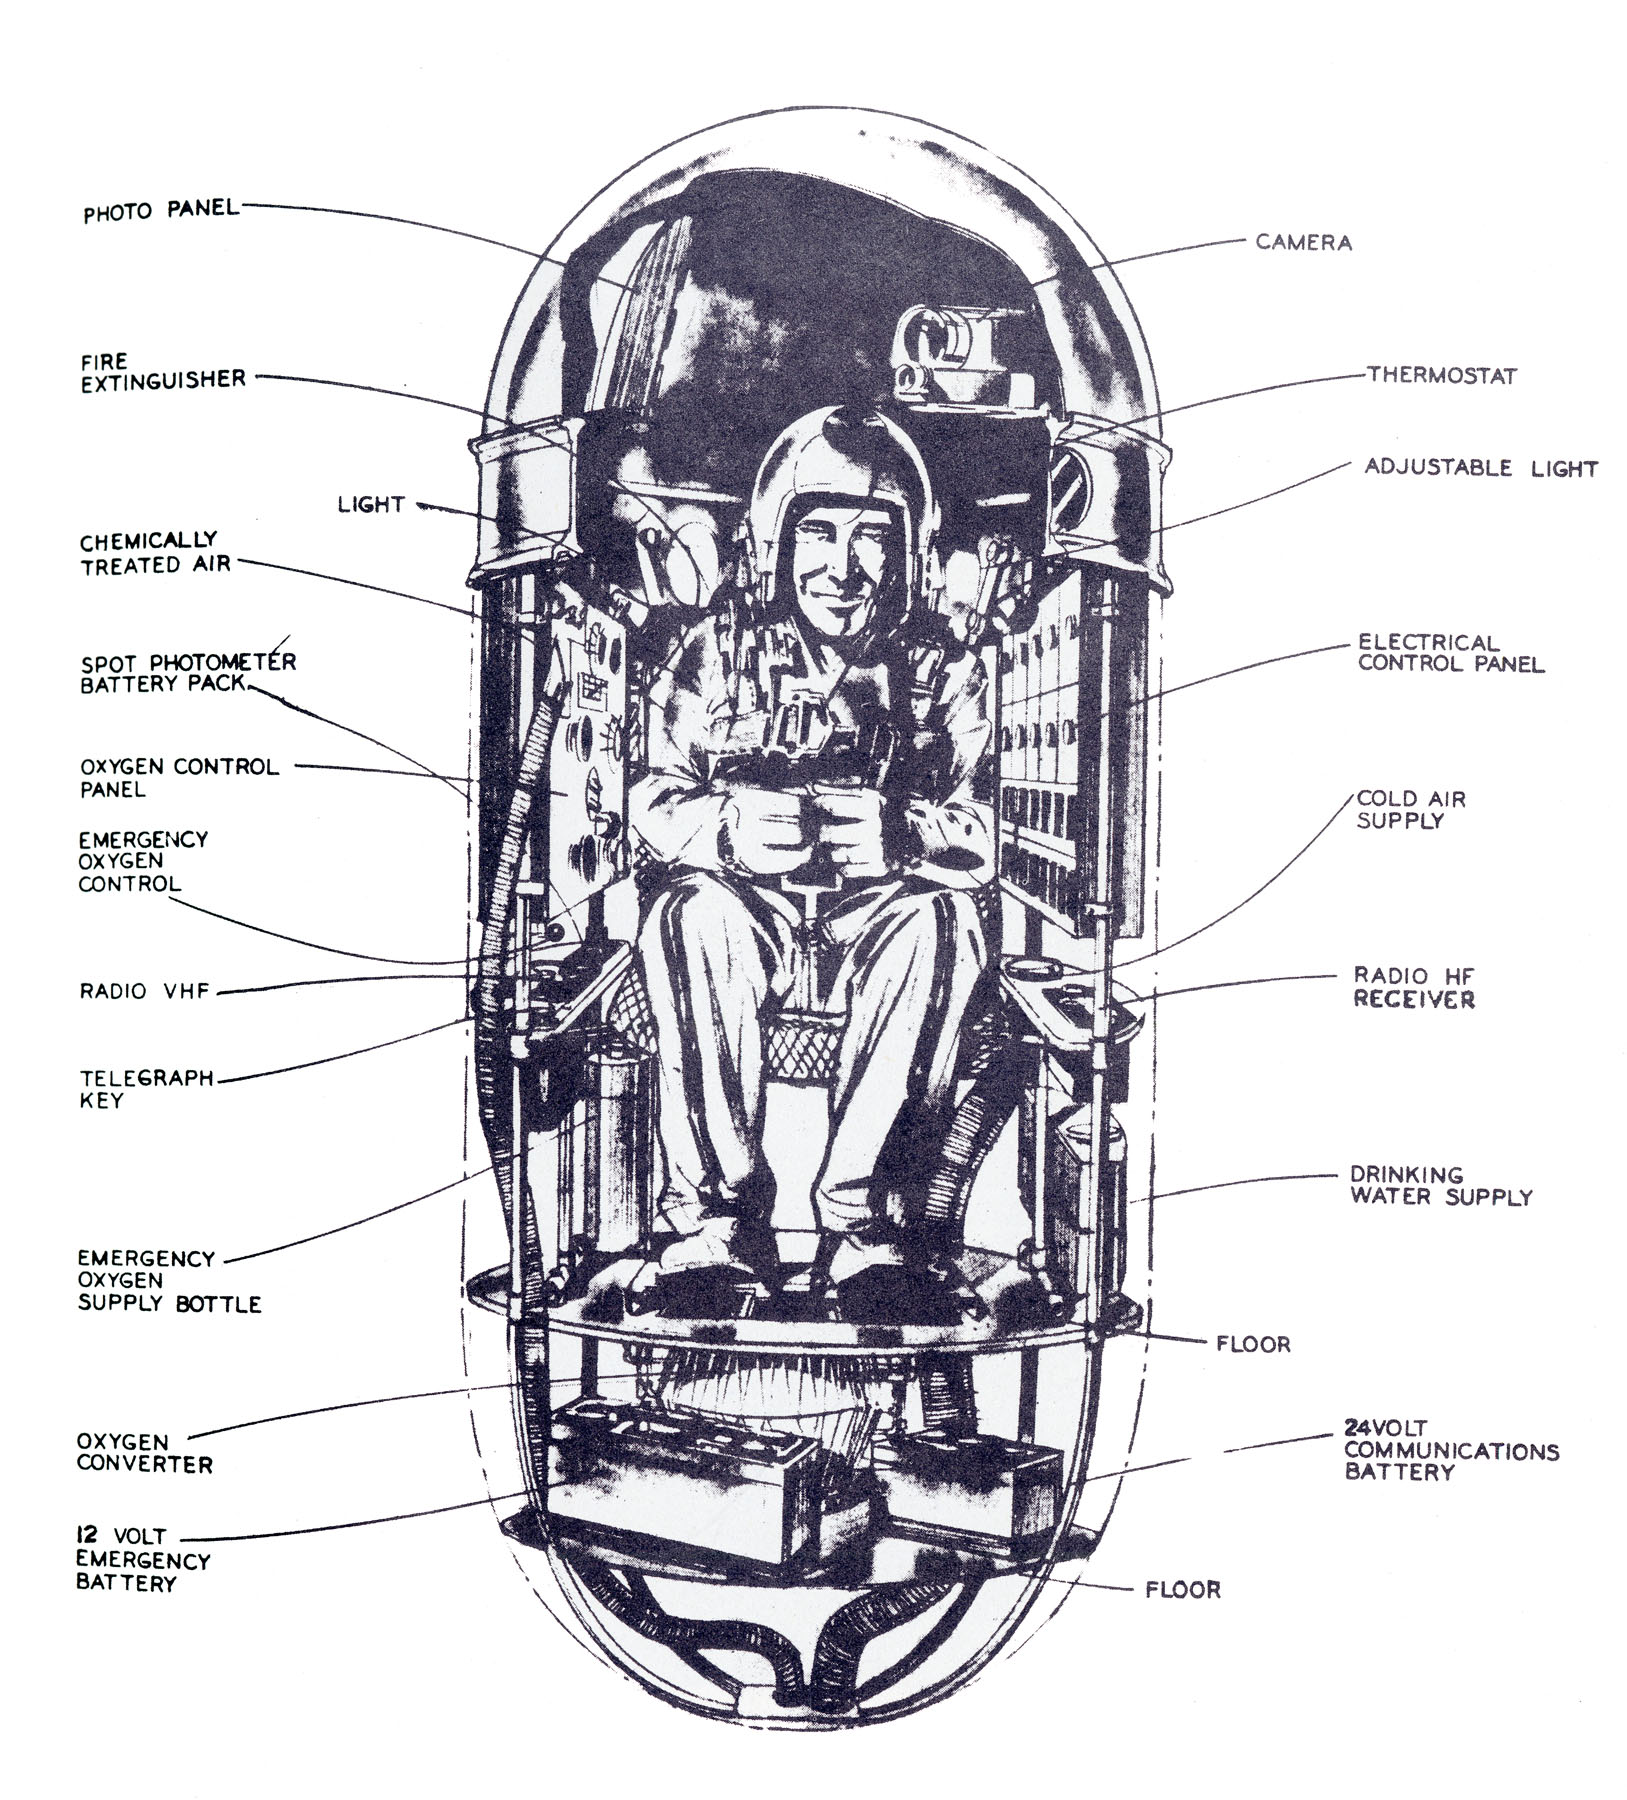 """The Man High capsule. From Historical Division, Office of Information Services, Air Force Research and Development Command, Holloman Air Force Base, """"History of Research in Space Biology and Biodynamics at the Air Force Missile Development Center, Holloman, 1946-1958."""" Available  here ."""